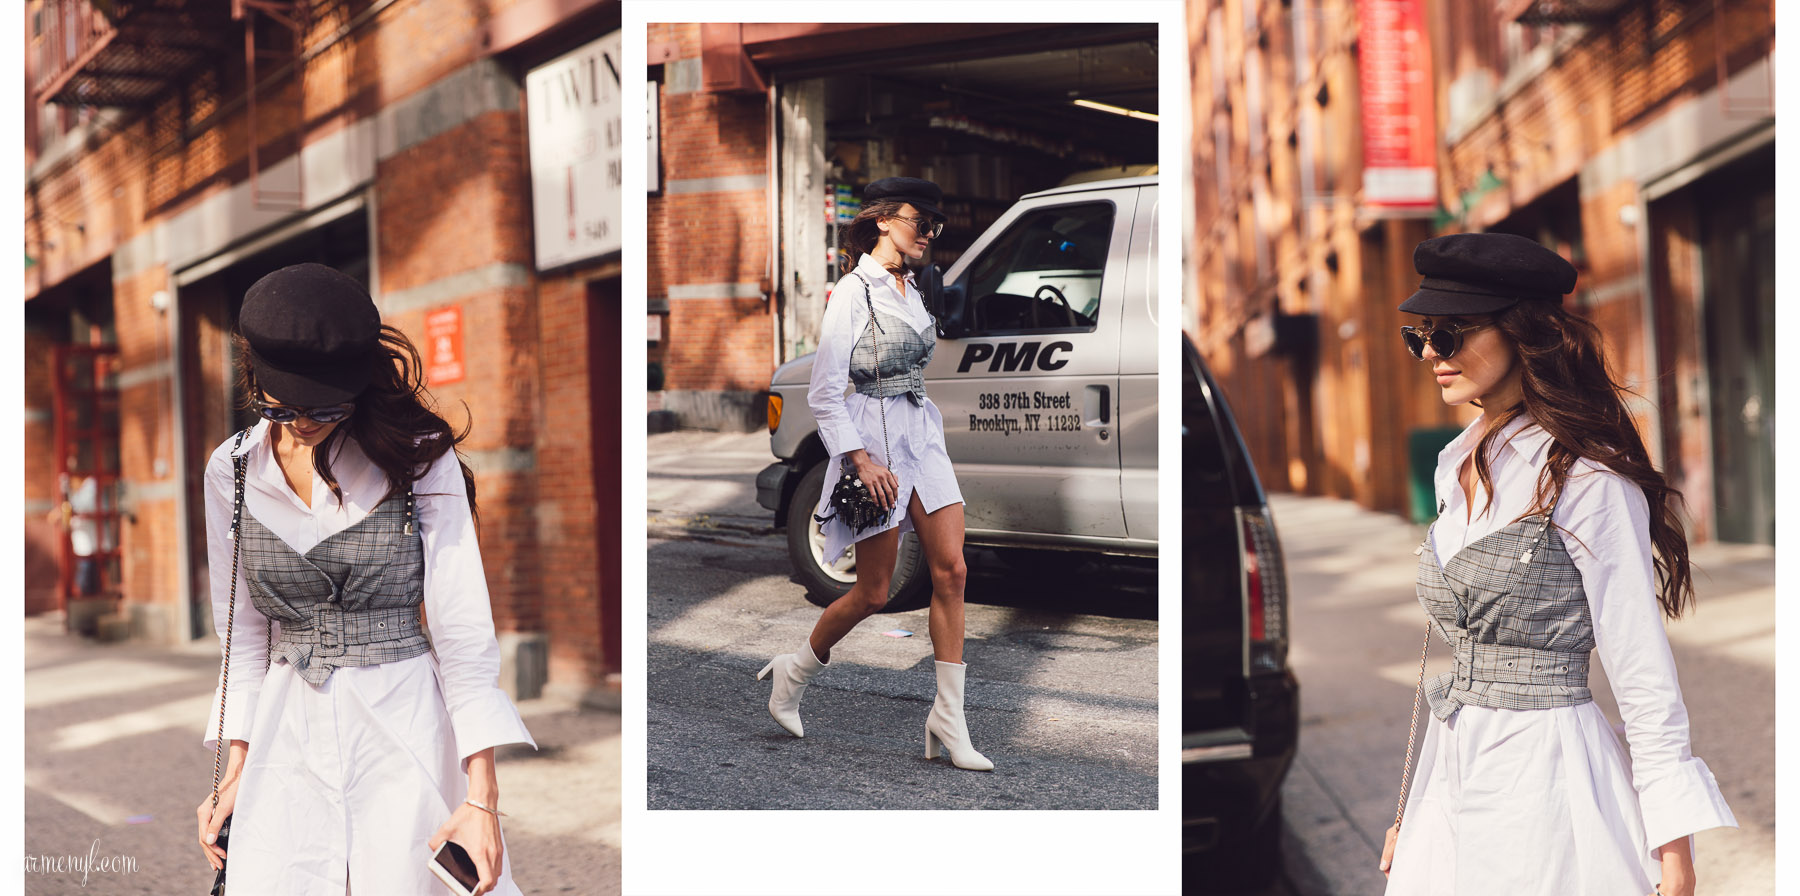 Street style Looks At 31 Philip Lim New York Fashion Week SS 2018 September 11 photographed By Street style photographer Armenyl